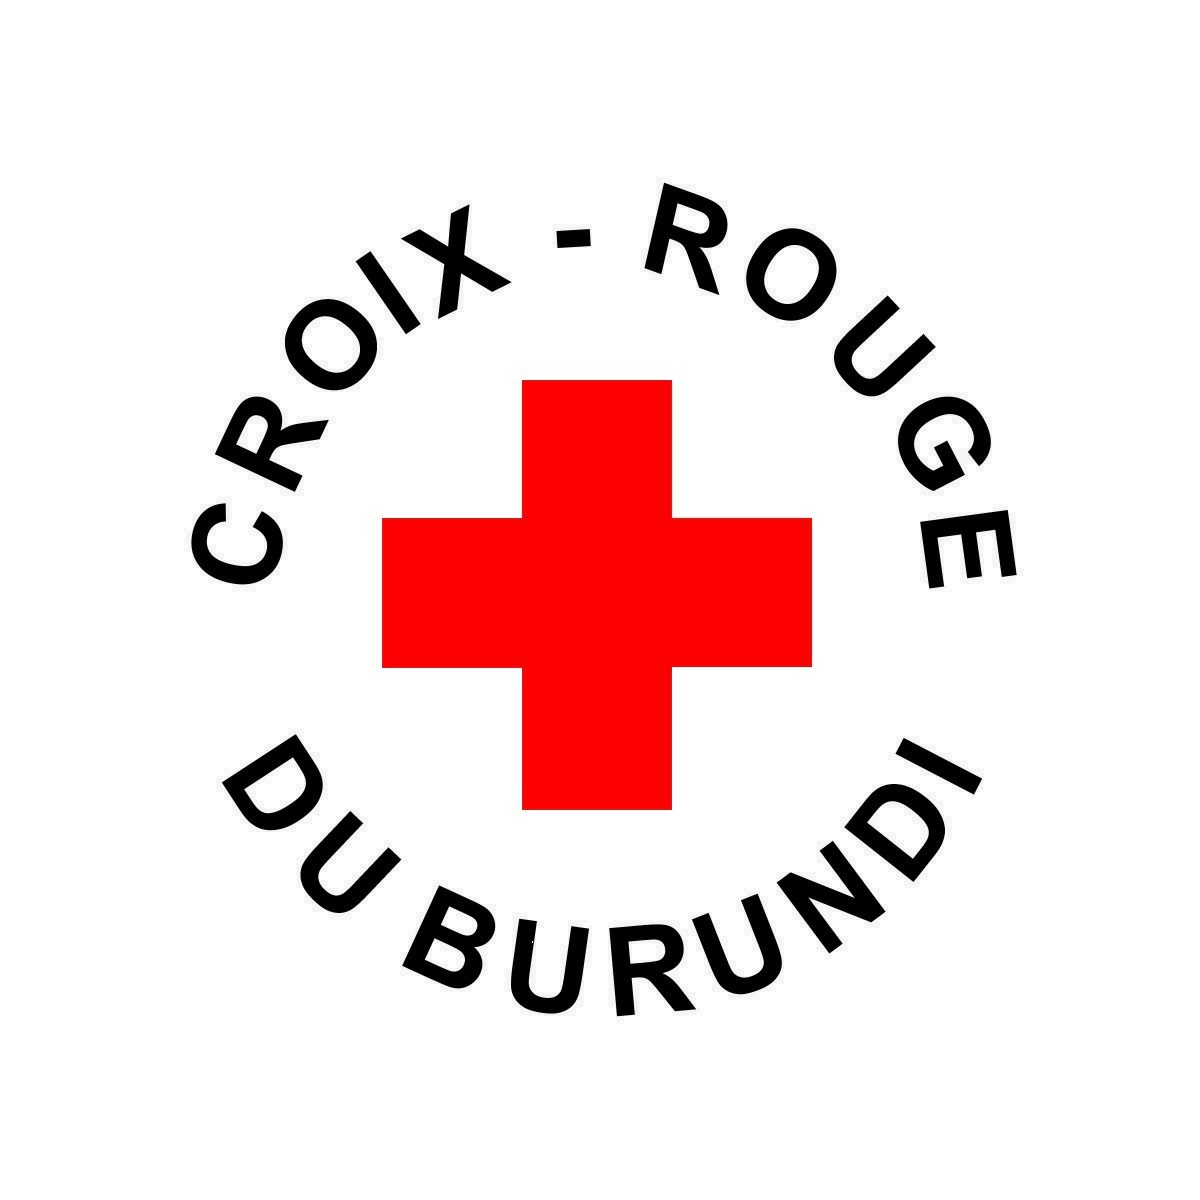 Red Cross Burundi